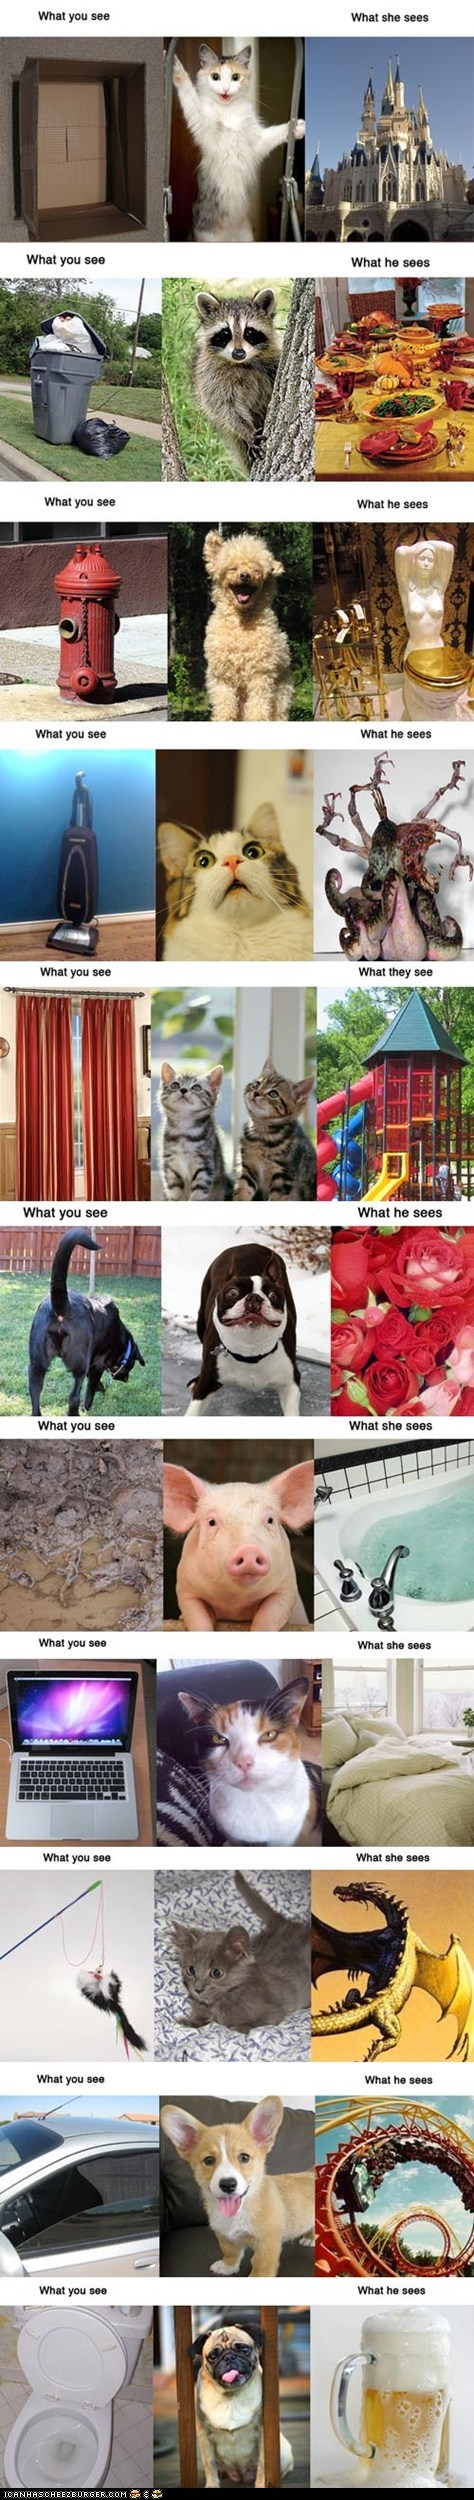 best of the week Cats perception pig raccoons vs - 6264140288